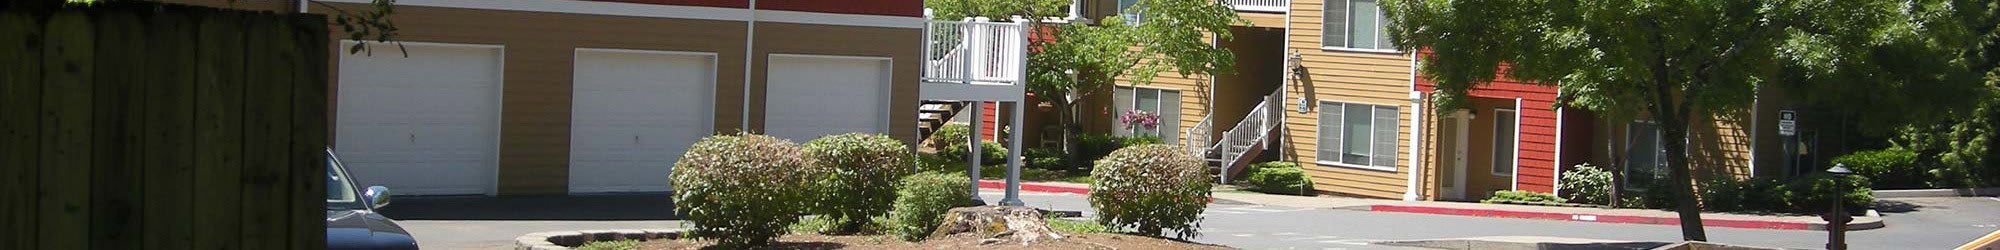 Learn more about our apartments in Sandy, OR; schedule a tour and come see for yourself!